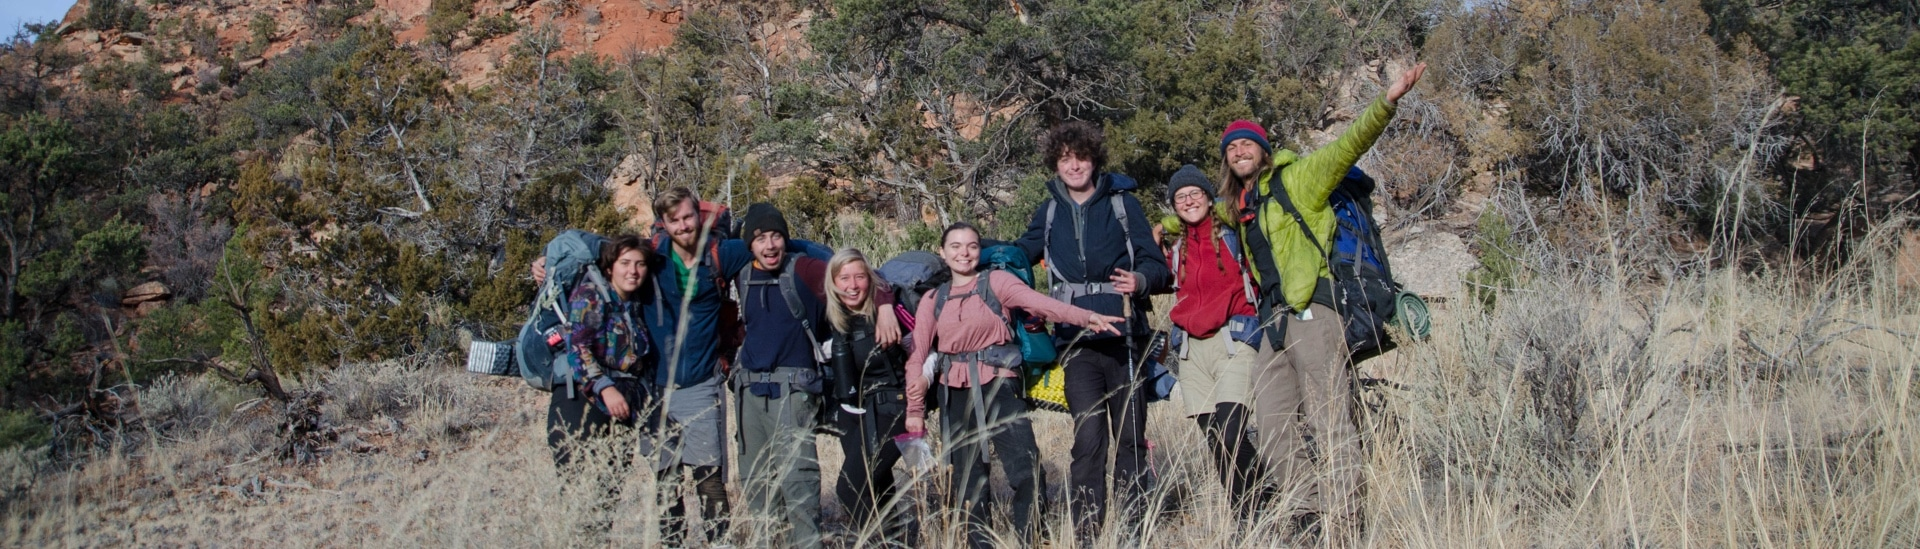 group of young people with backpacks on smiling in nature